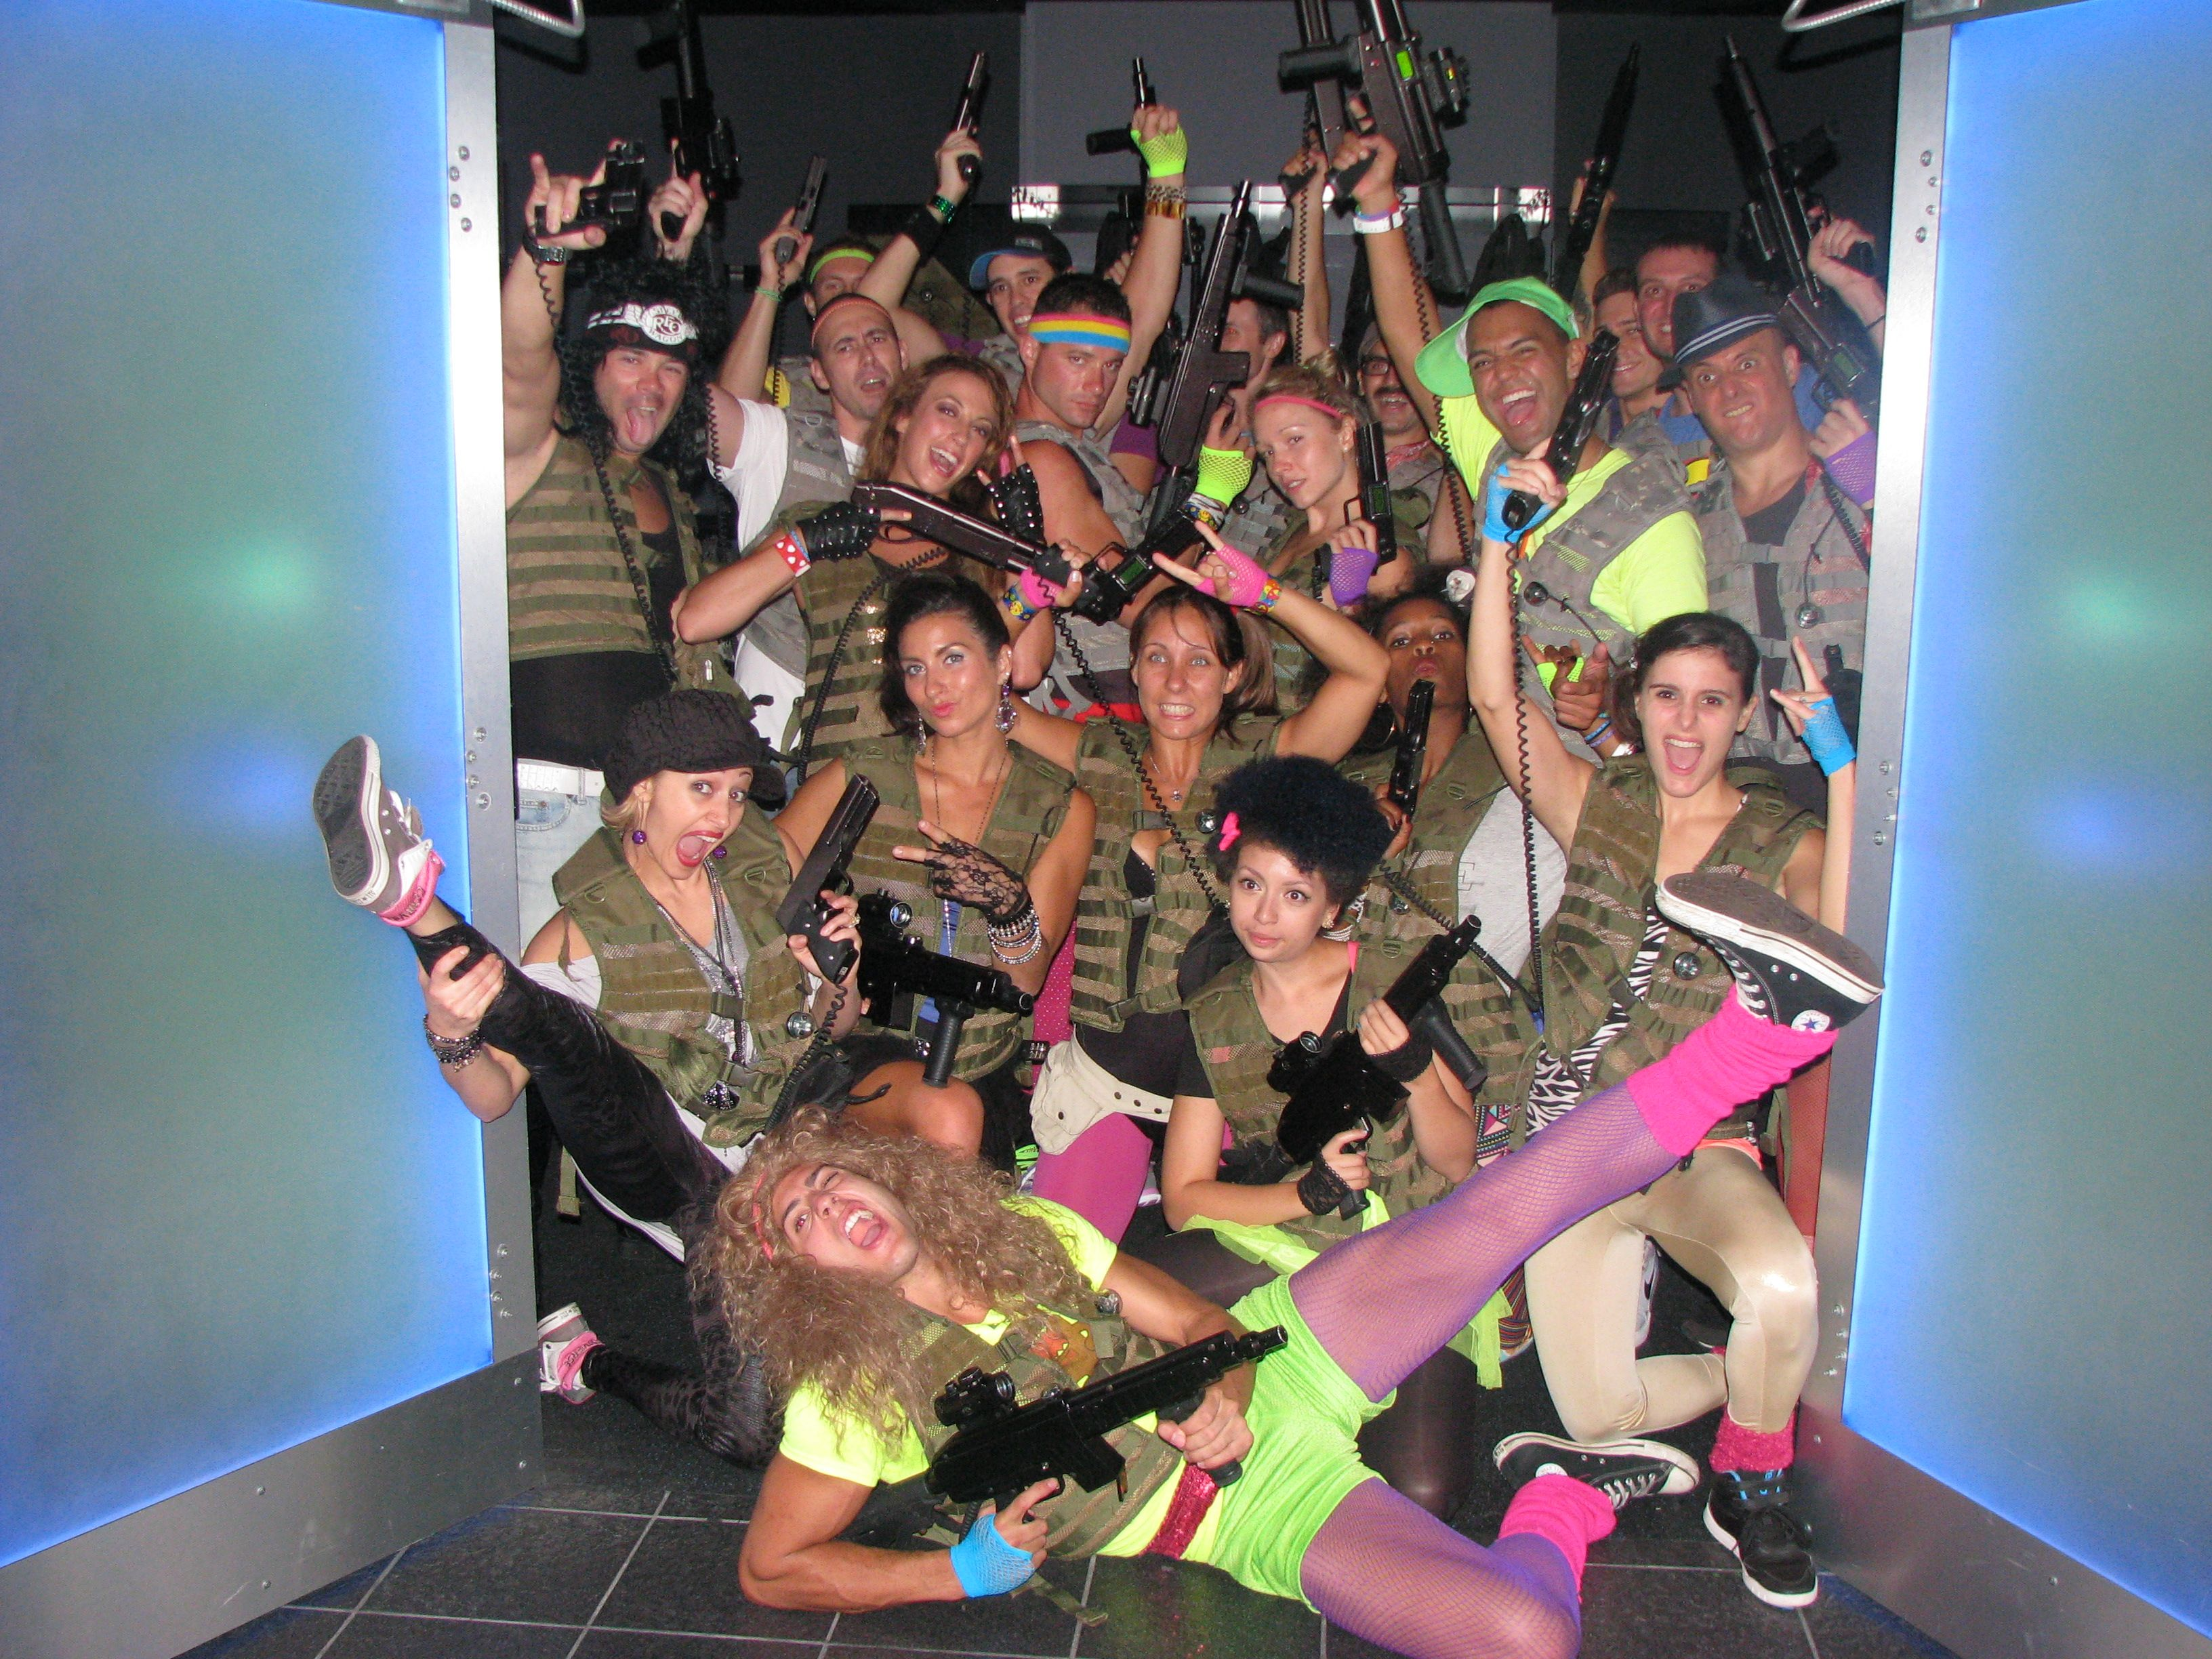 laser tag birthday party orlando ; c049f8954d5fc8ff6c616cdc78481eaa